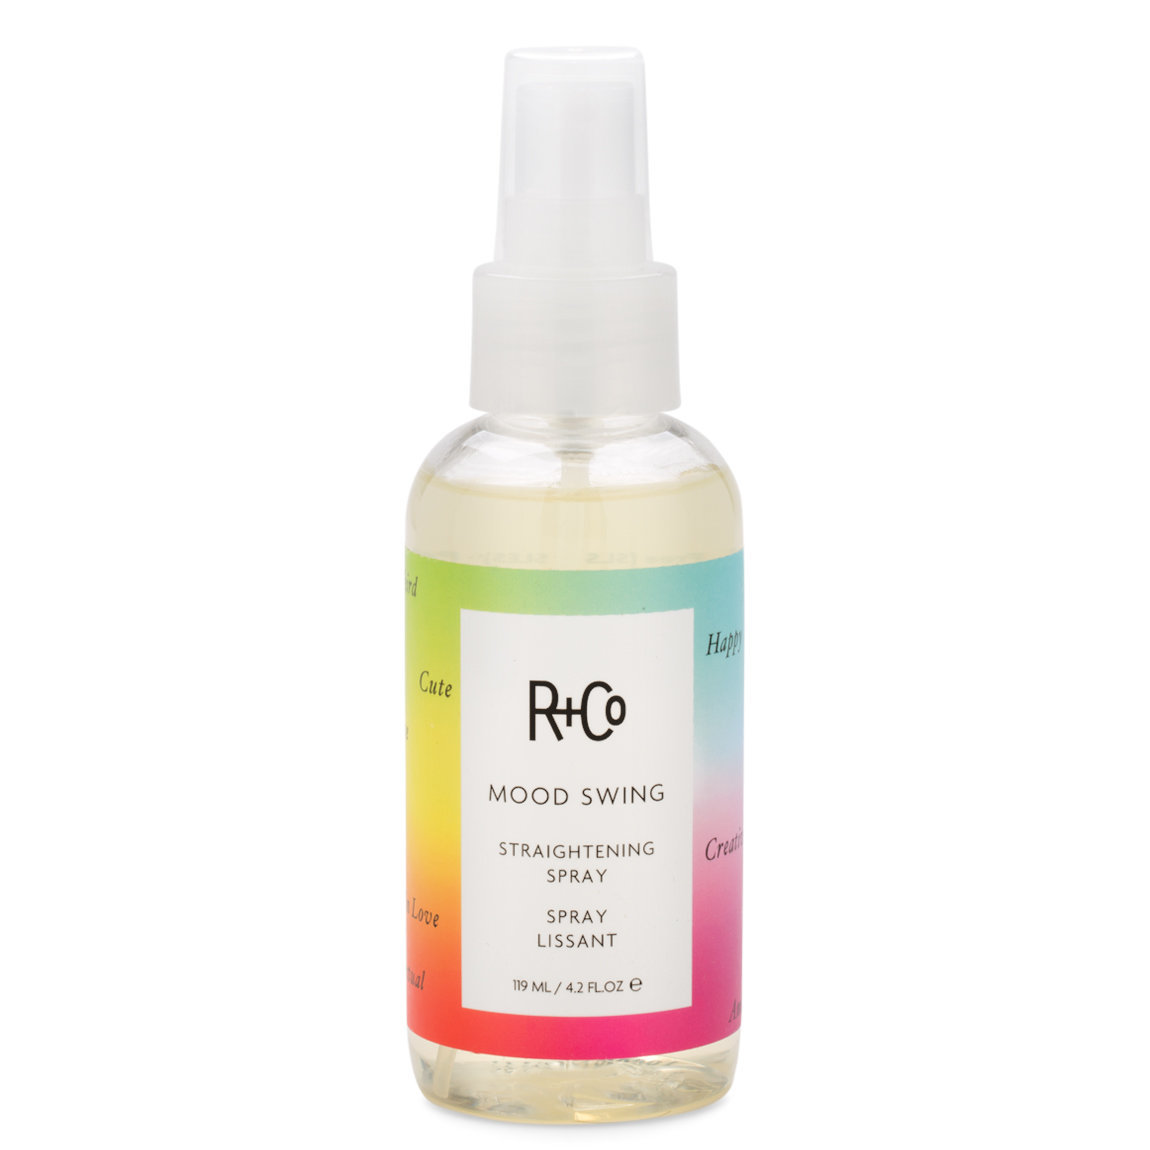 R+Co Mood Swing Straightening Spray alternative view 1 - product swatch.